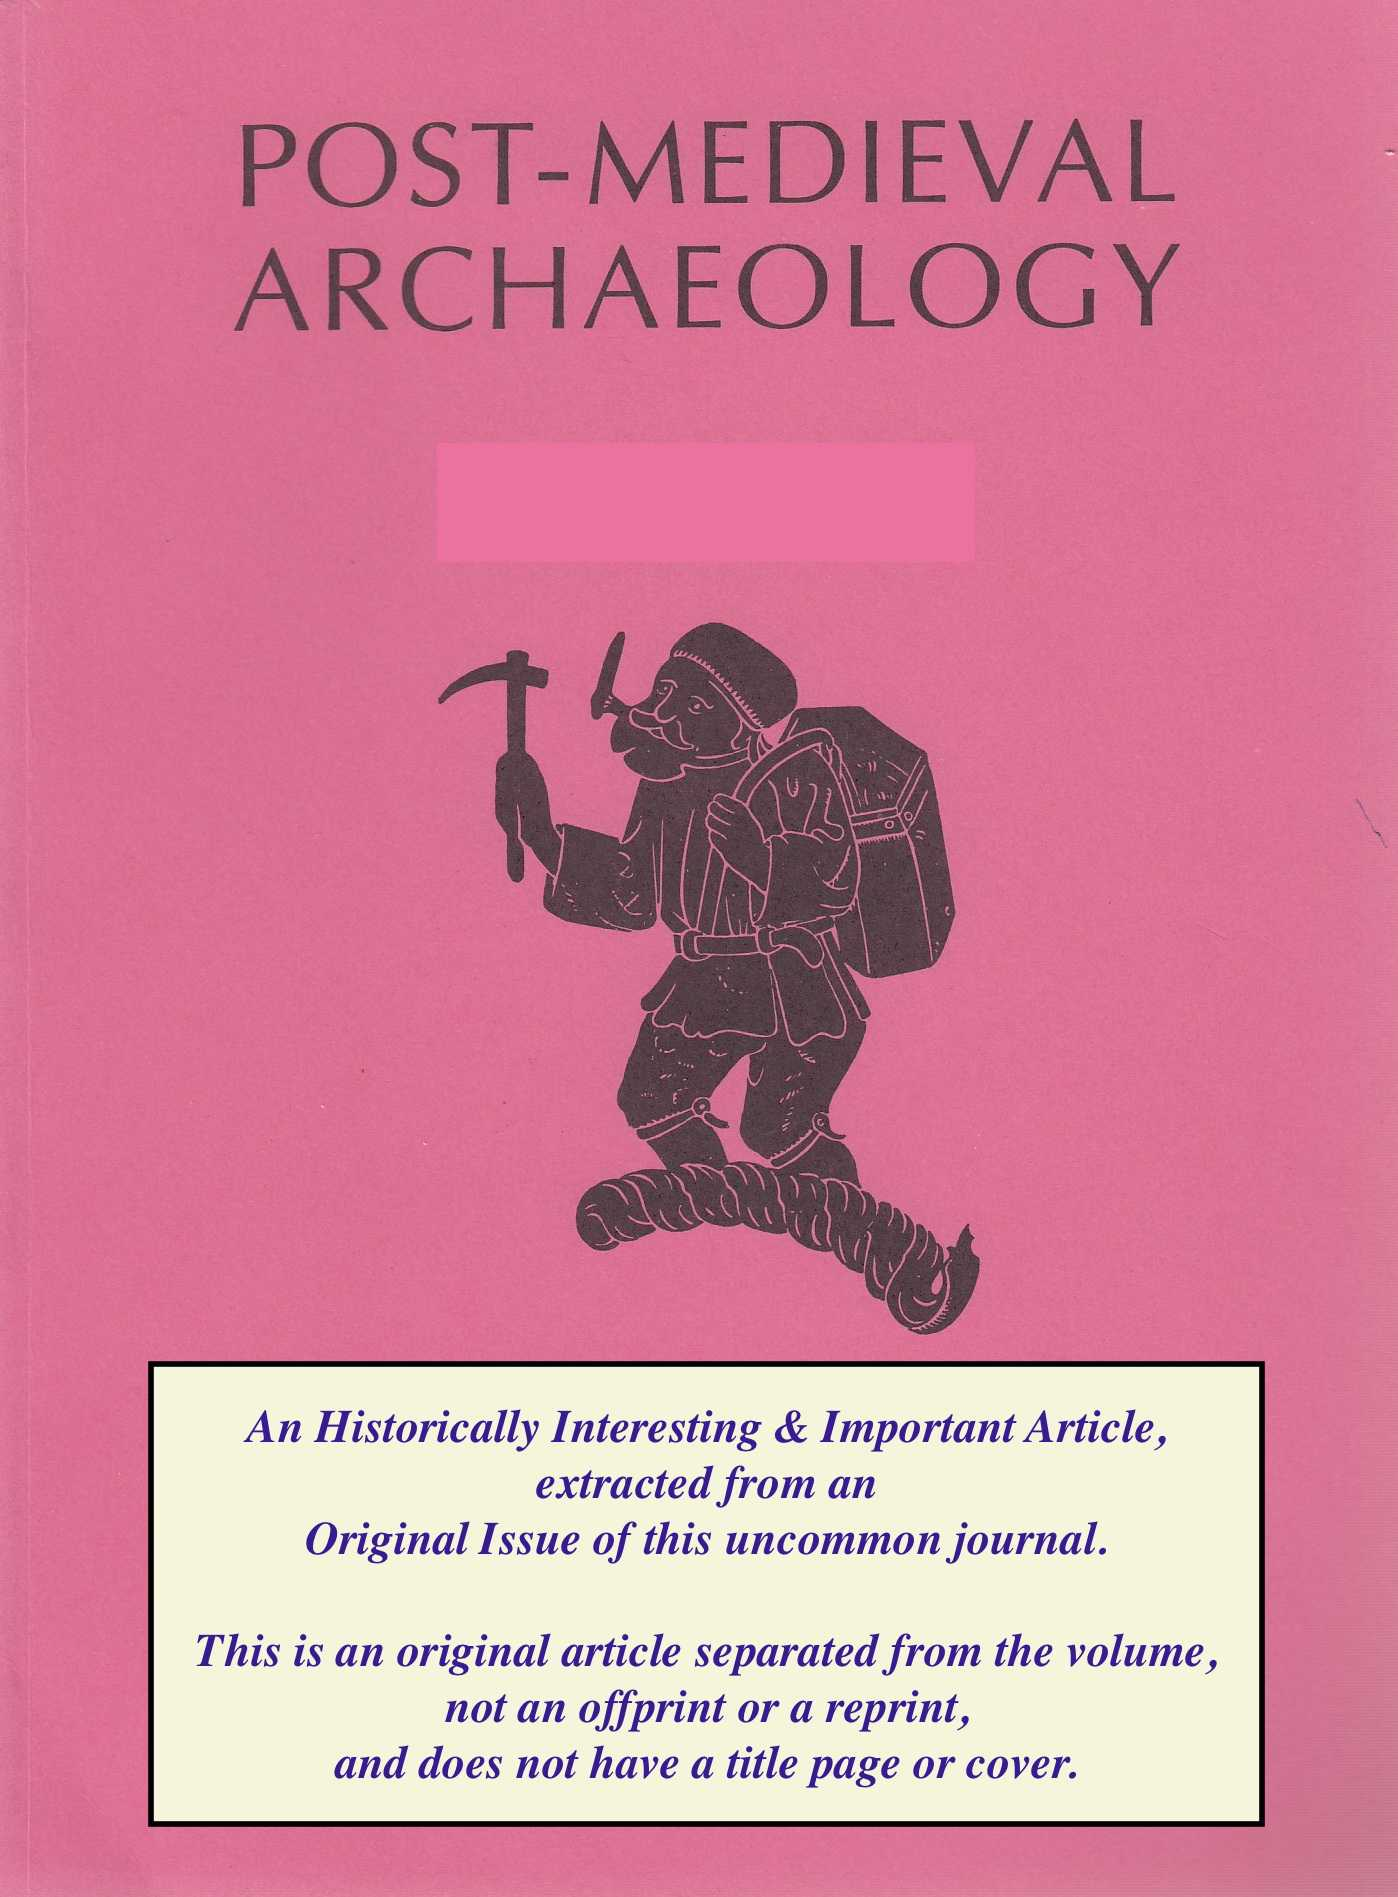 HORNING, AUDREY - Archaeology and the construction of America's Jamestown TOGETHER WITH Jamestown Rediscovery: an introduction. An original article from the Post Medieval Archaeology journal, 2006.